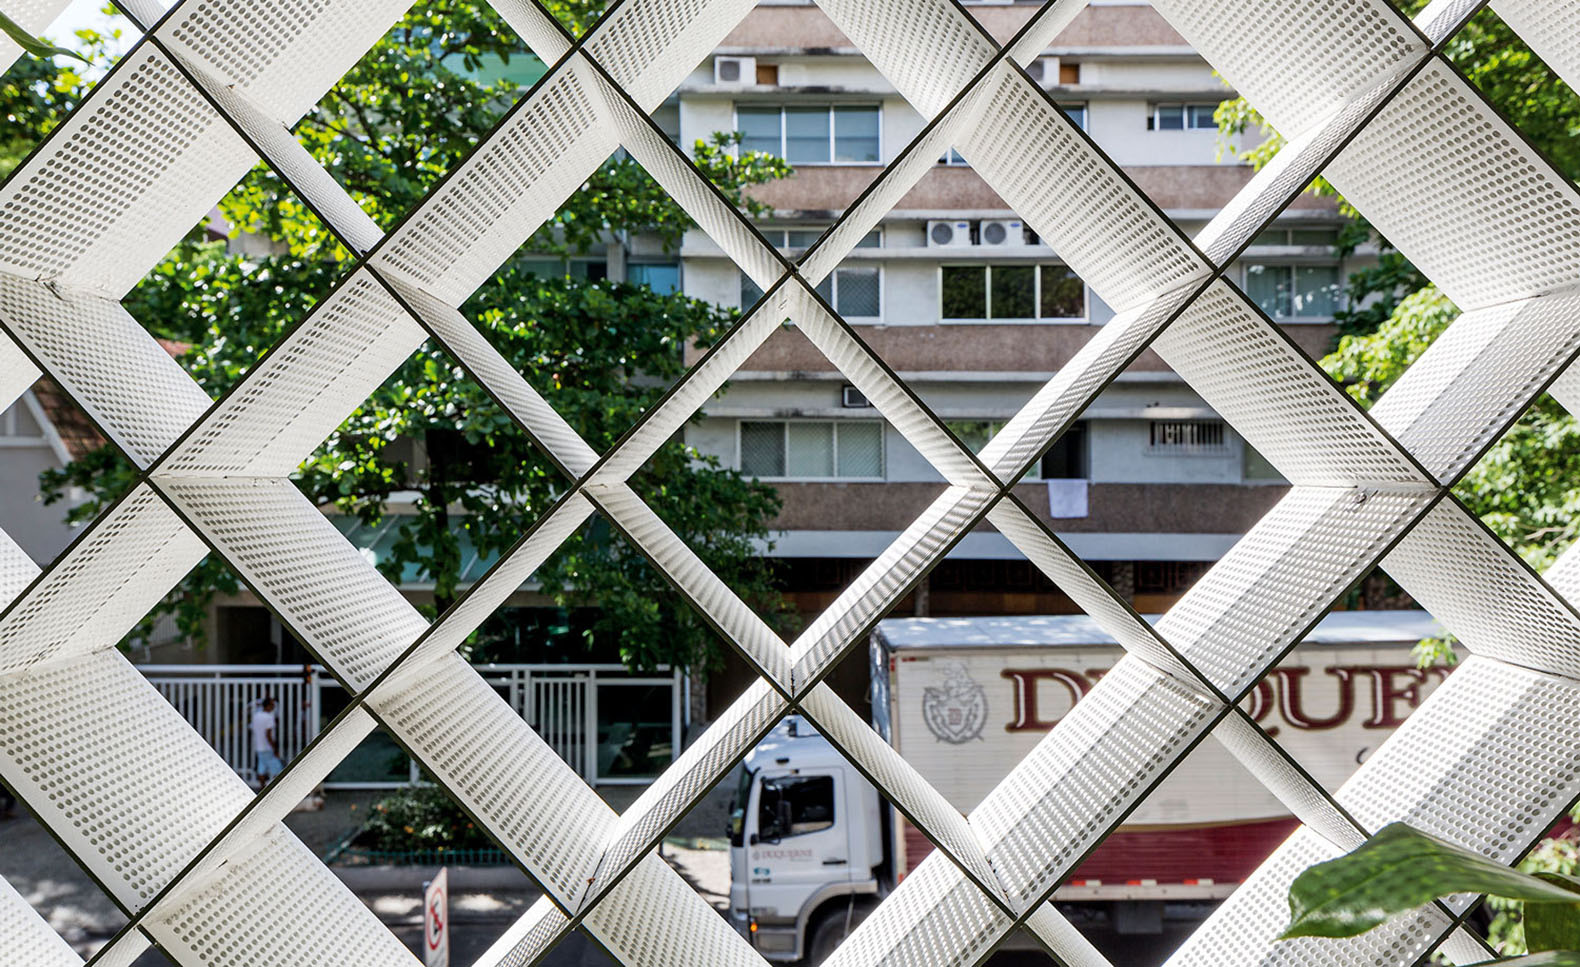 A beautiful perforated facade filters natural light into the